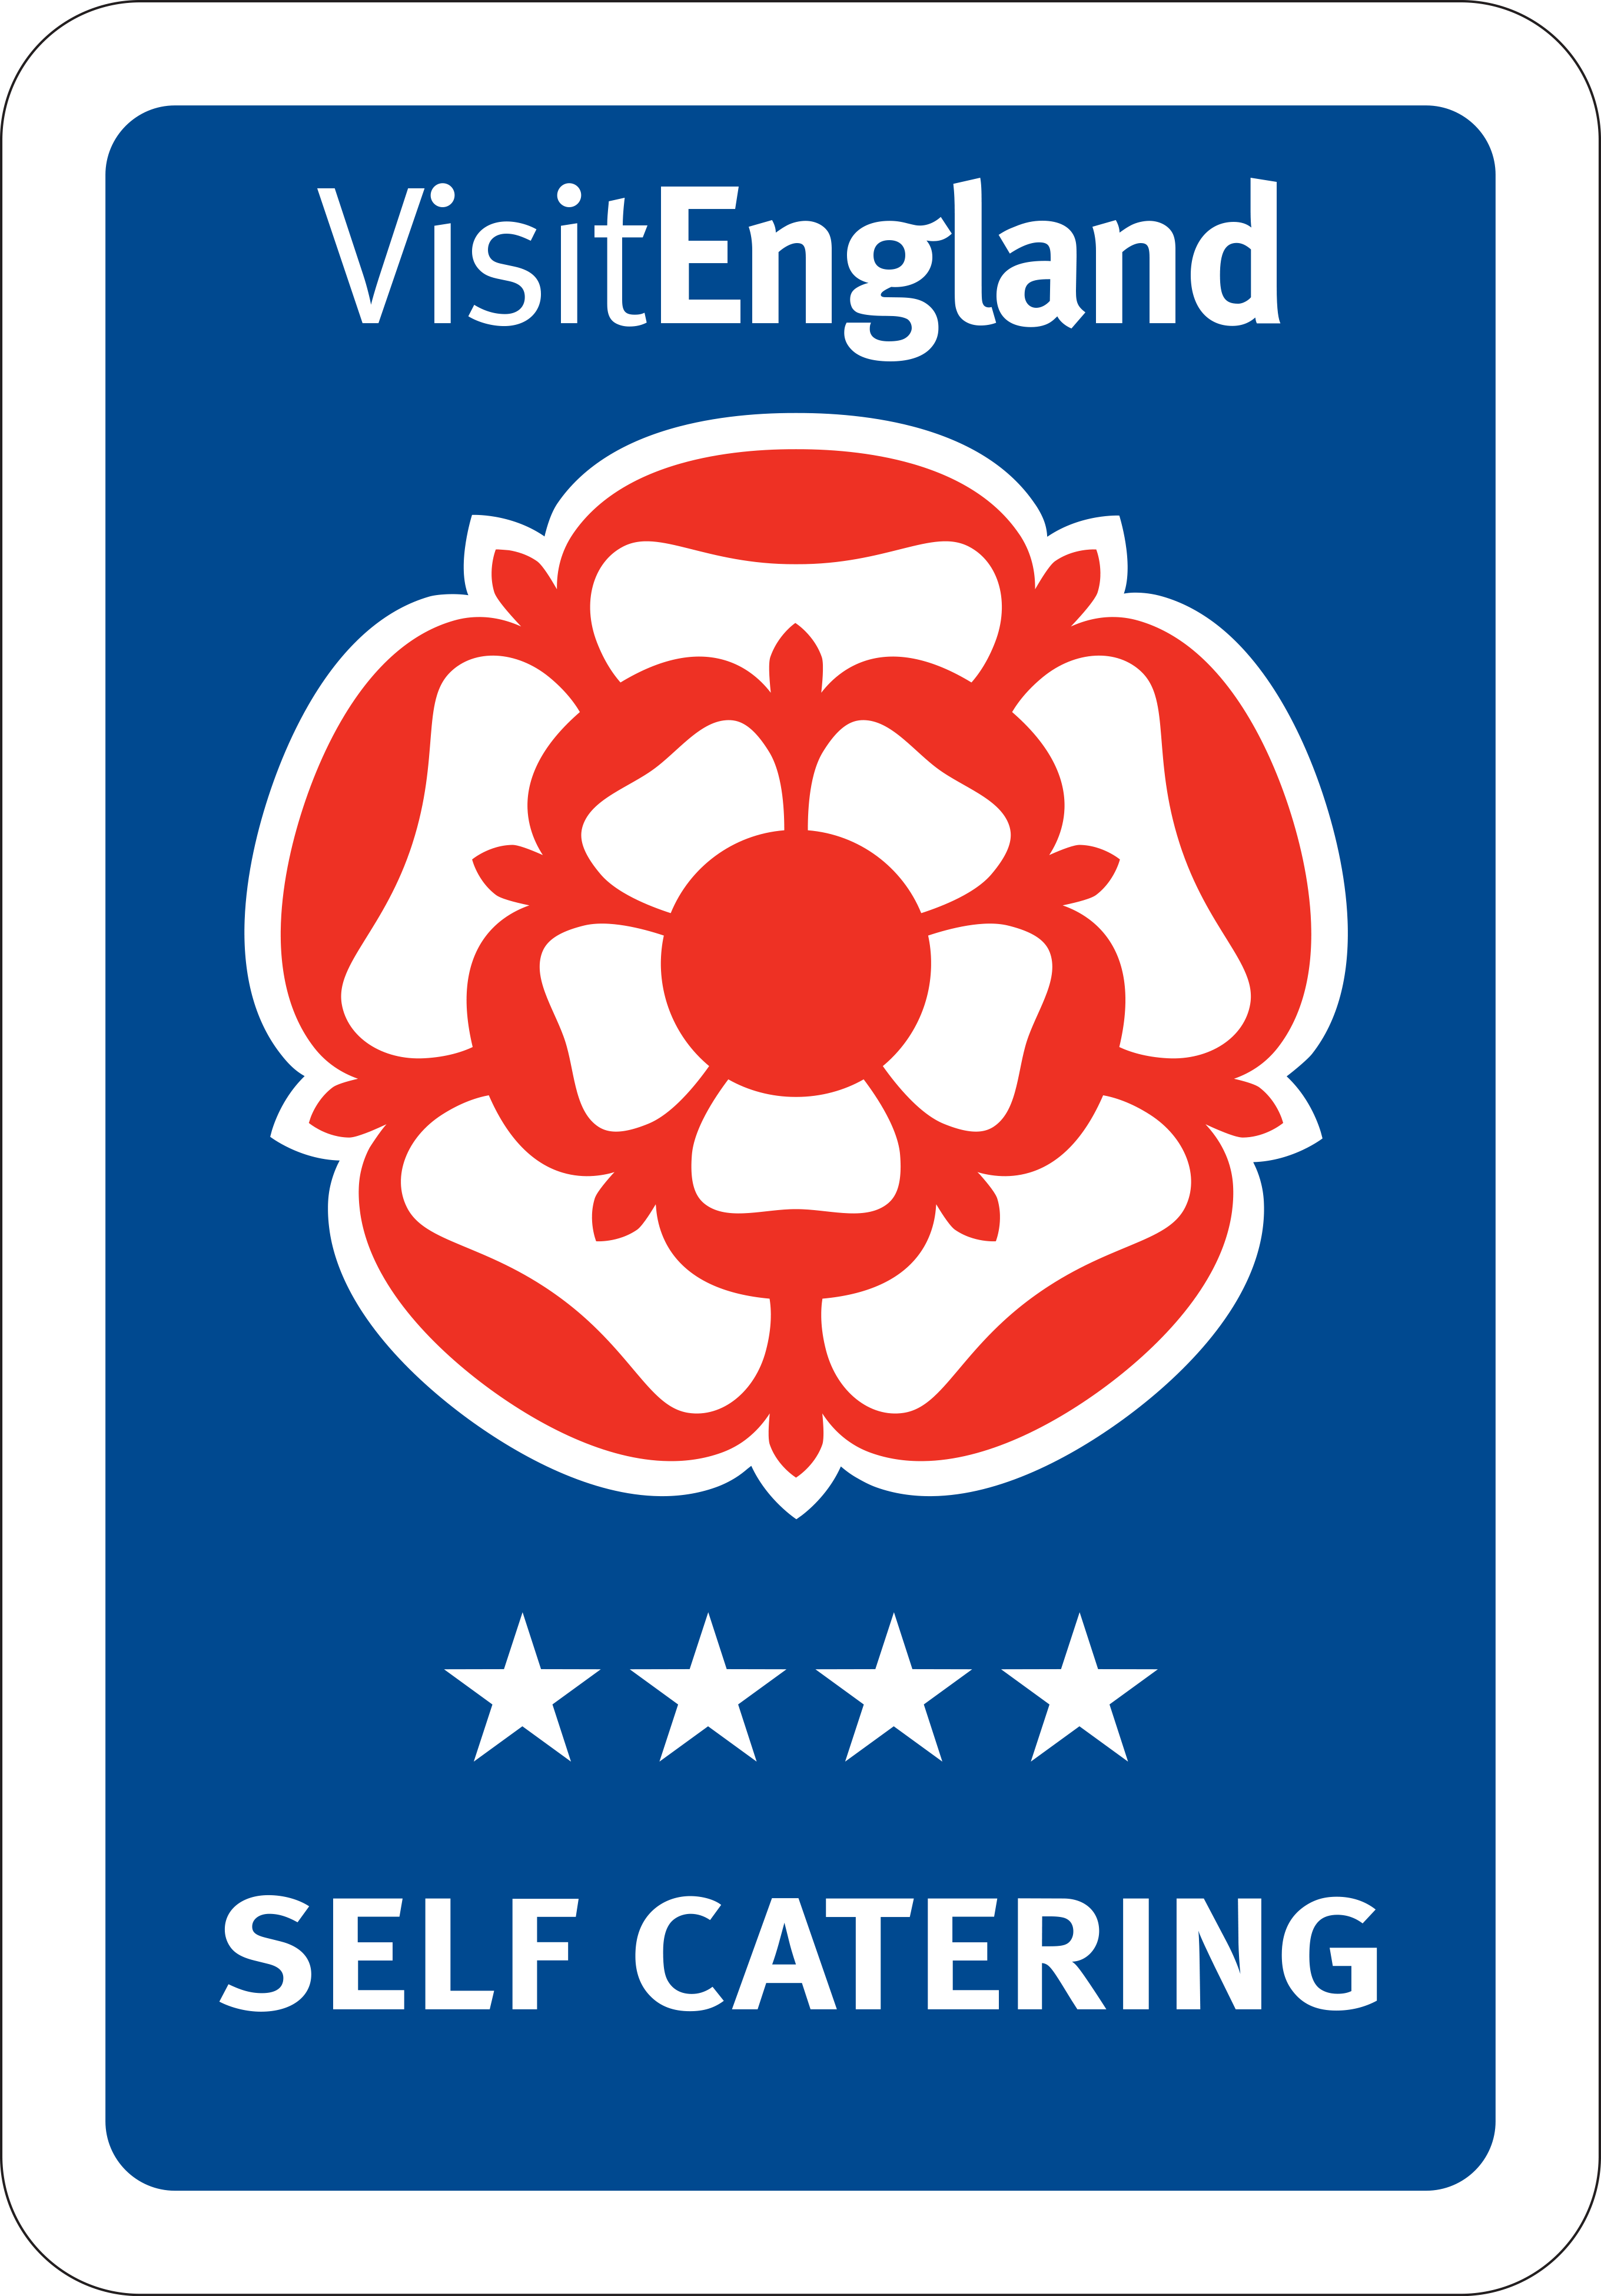 Visit England 4-Star Self Catering